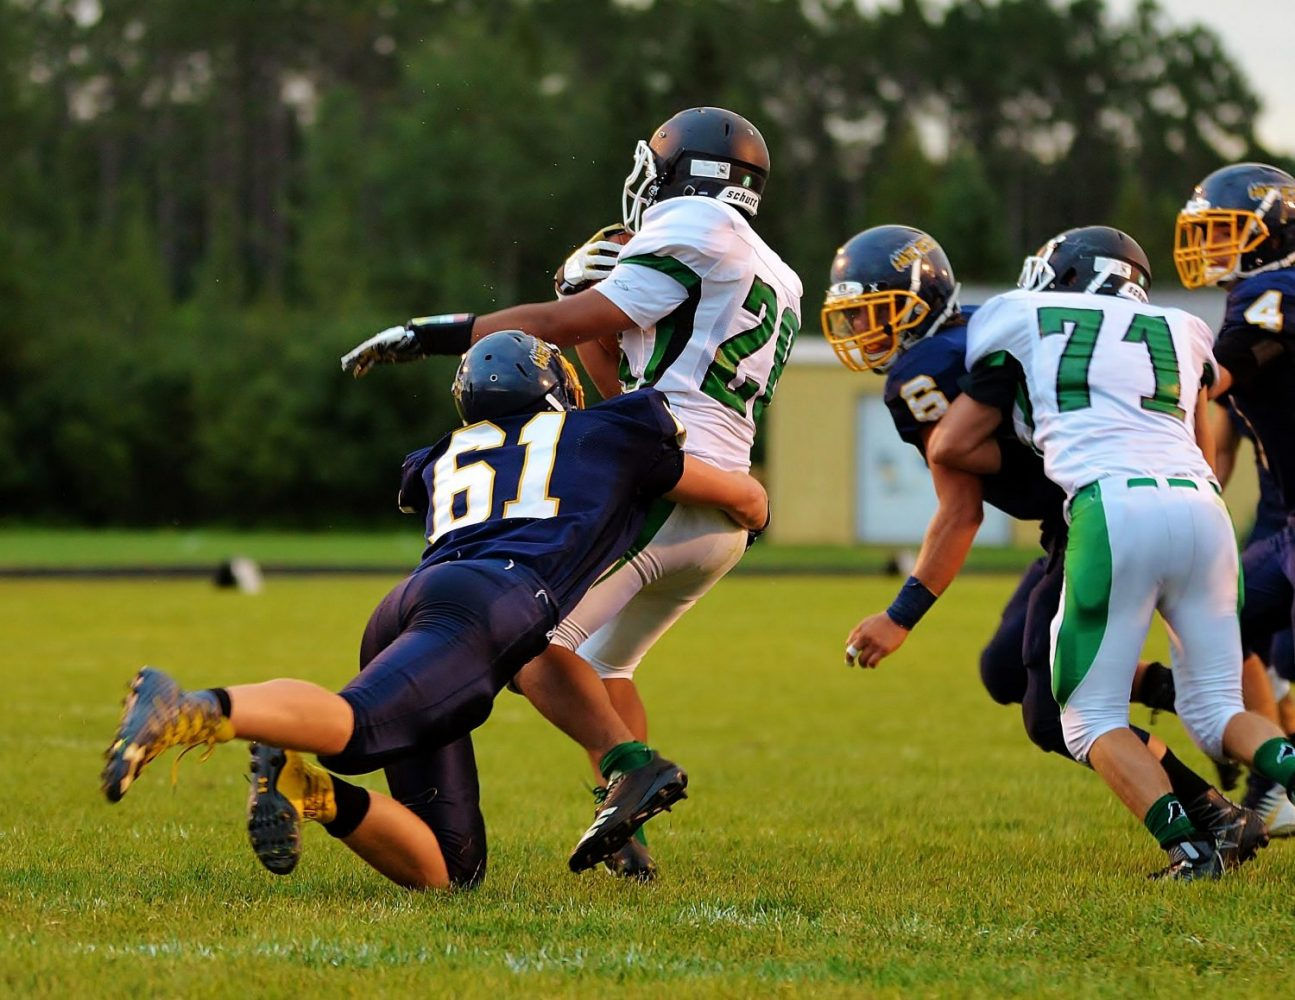 From left, Tomahawk's William Russell (61) pulls down the Hodags' Drake Martin (28).